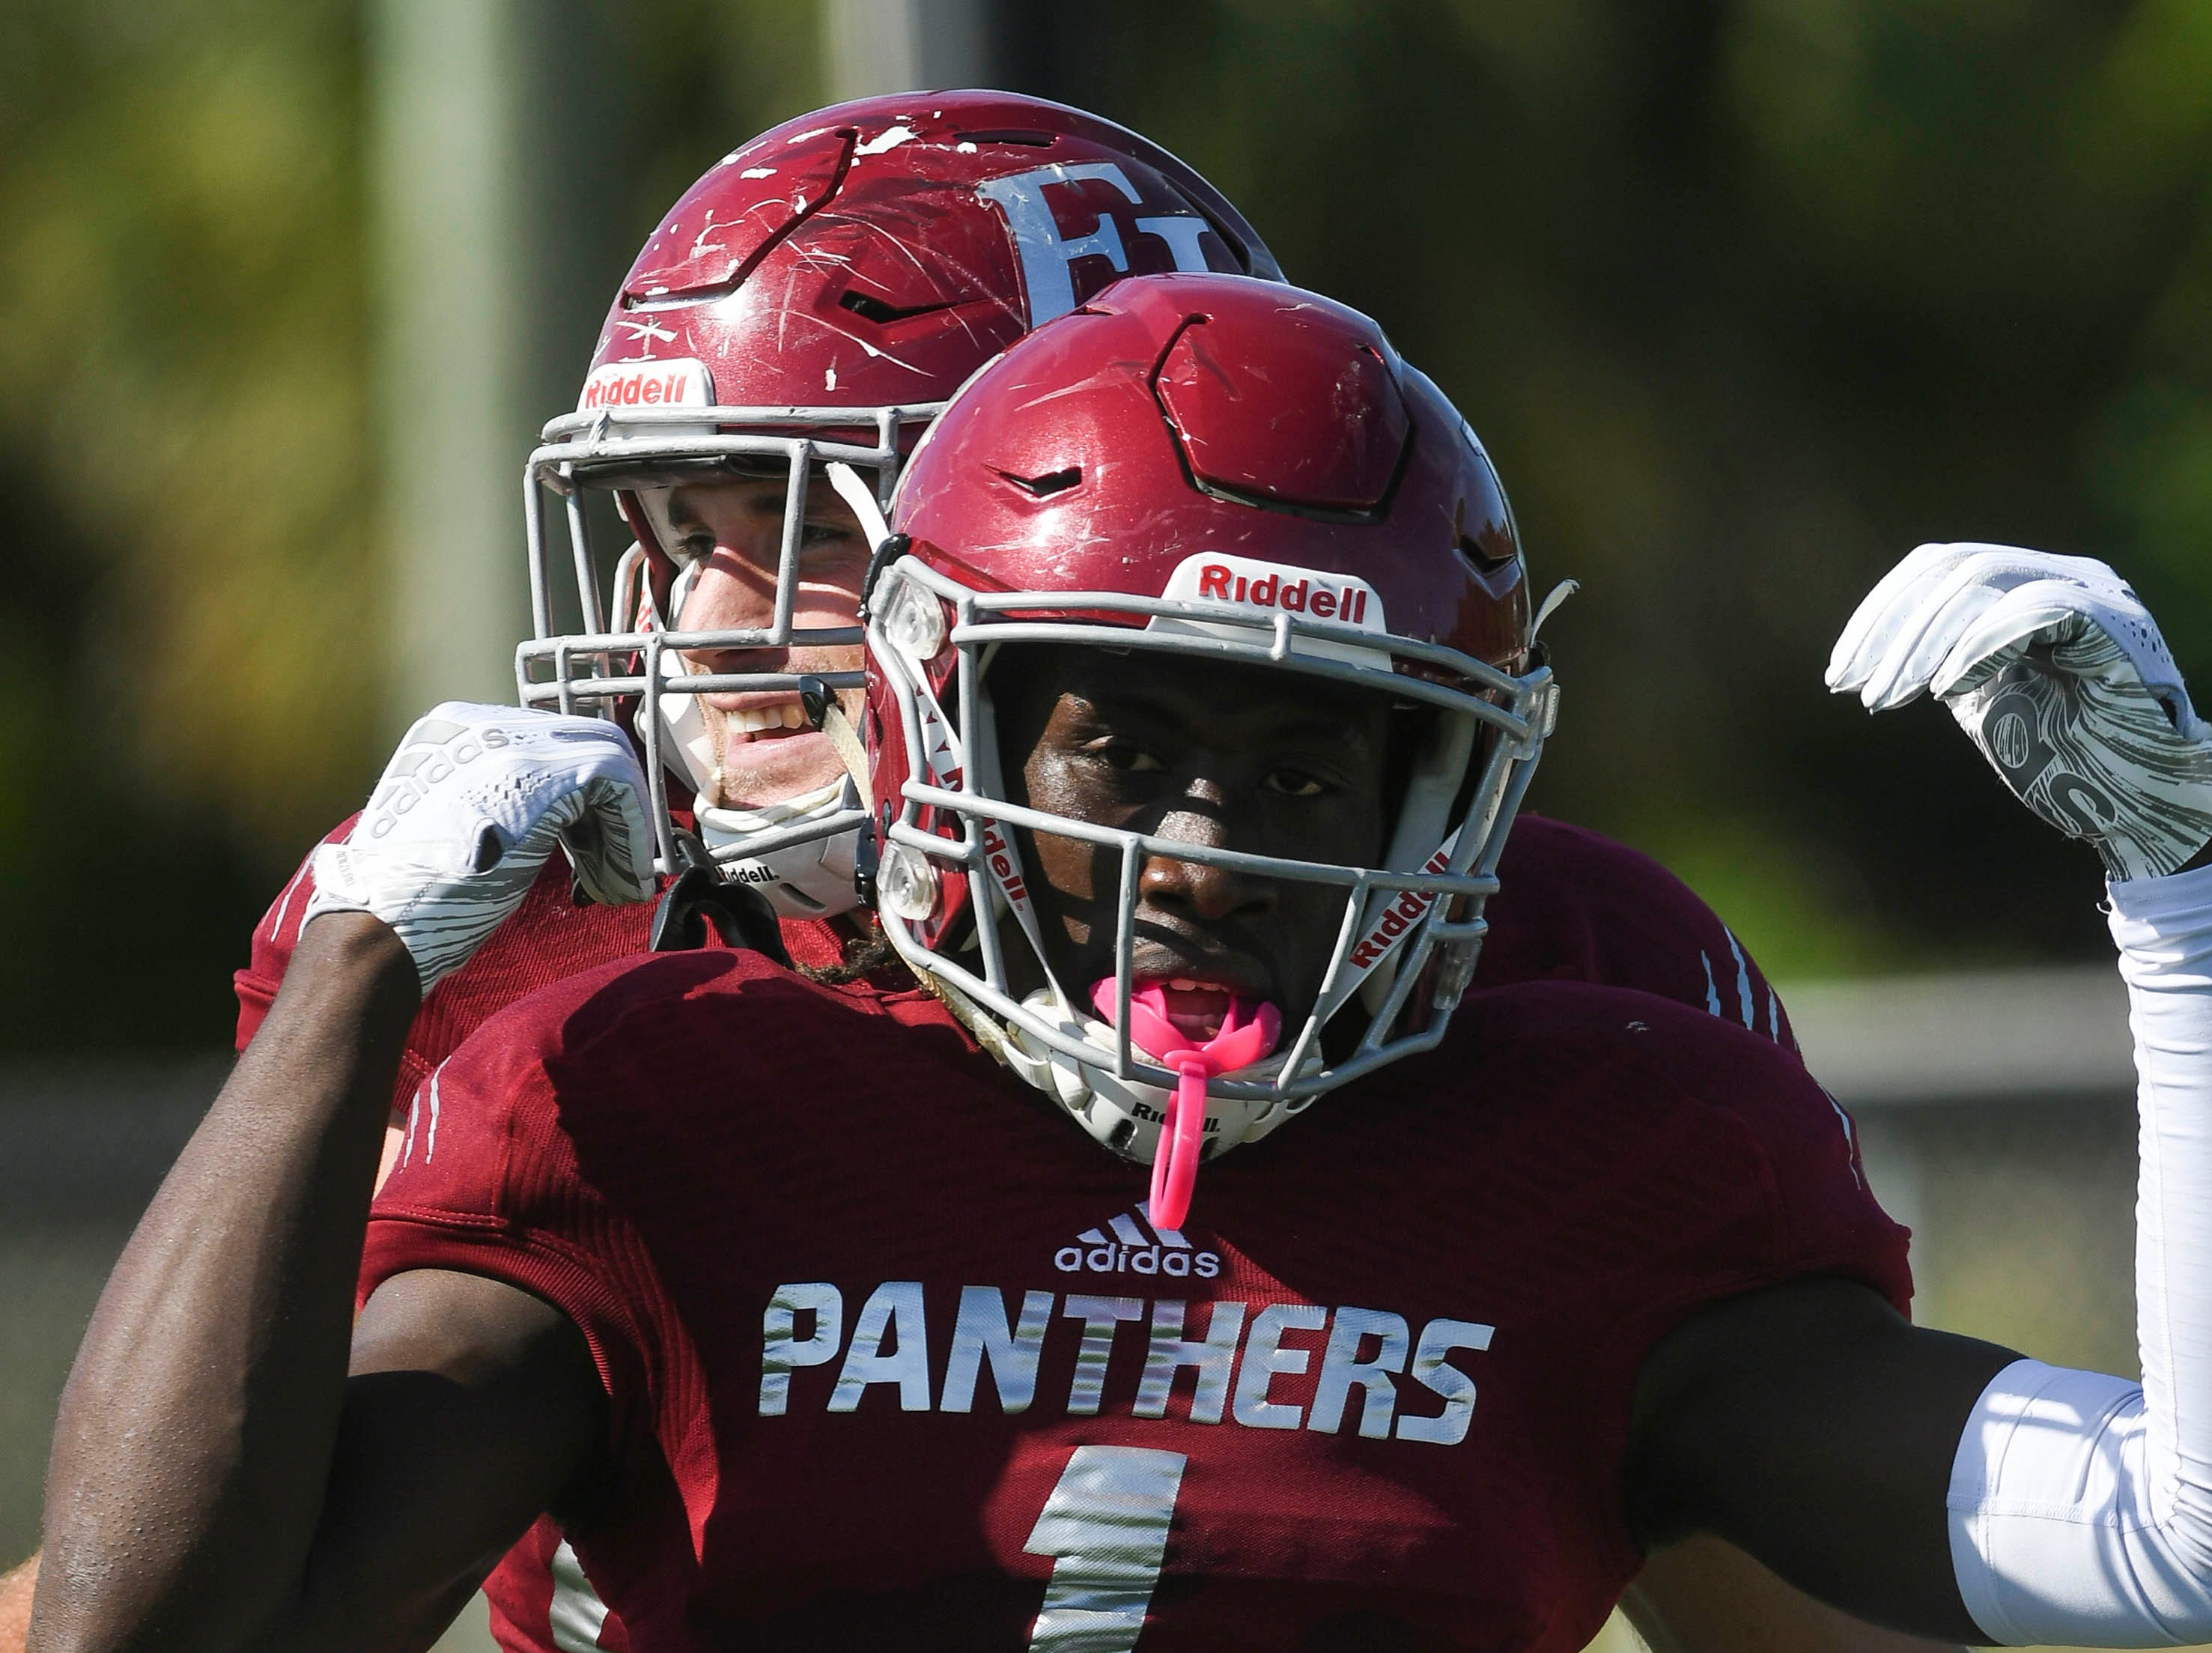 Romell Guerrier of Florida Tech celebrates a touchdown with teammates during Saturday's game.